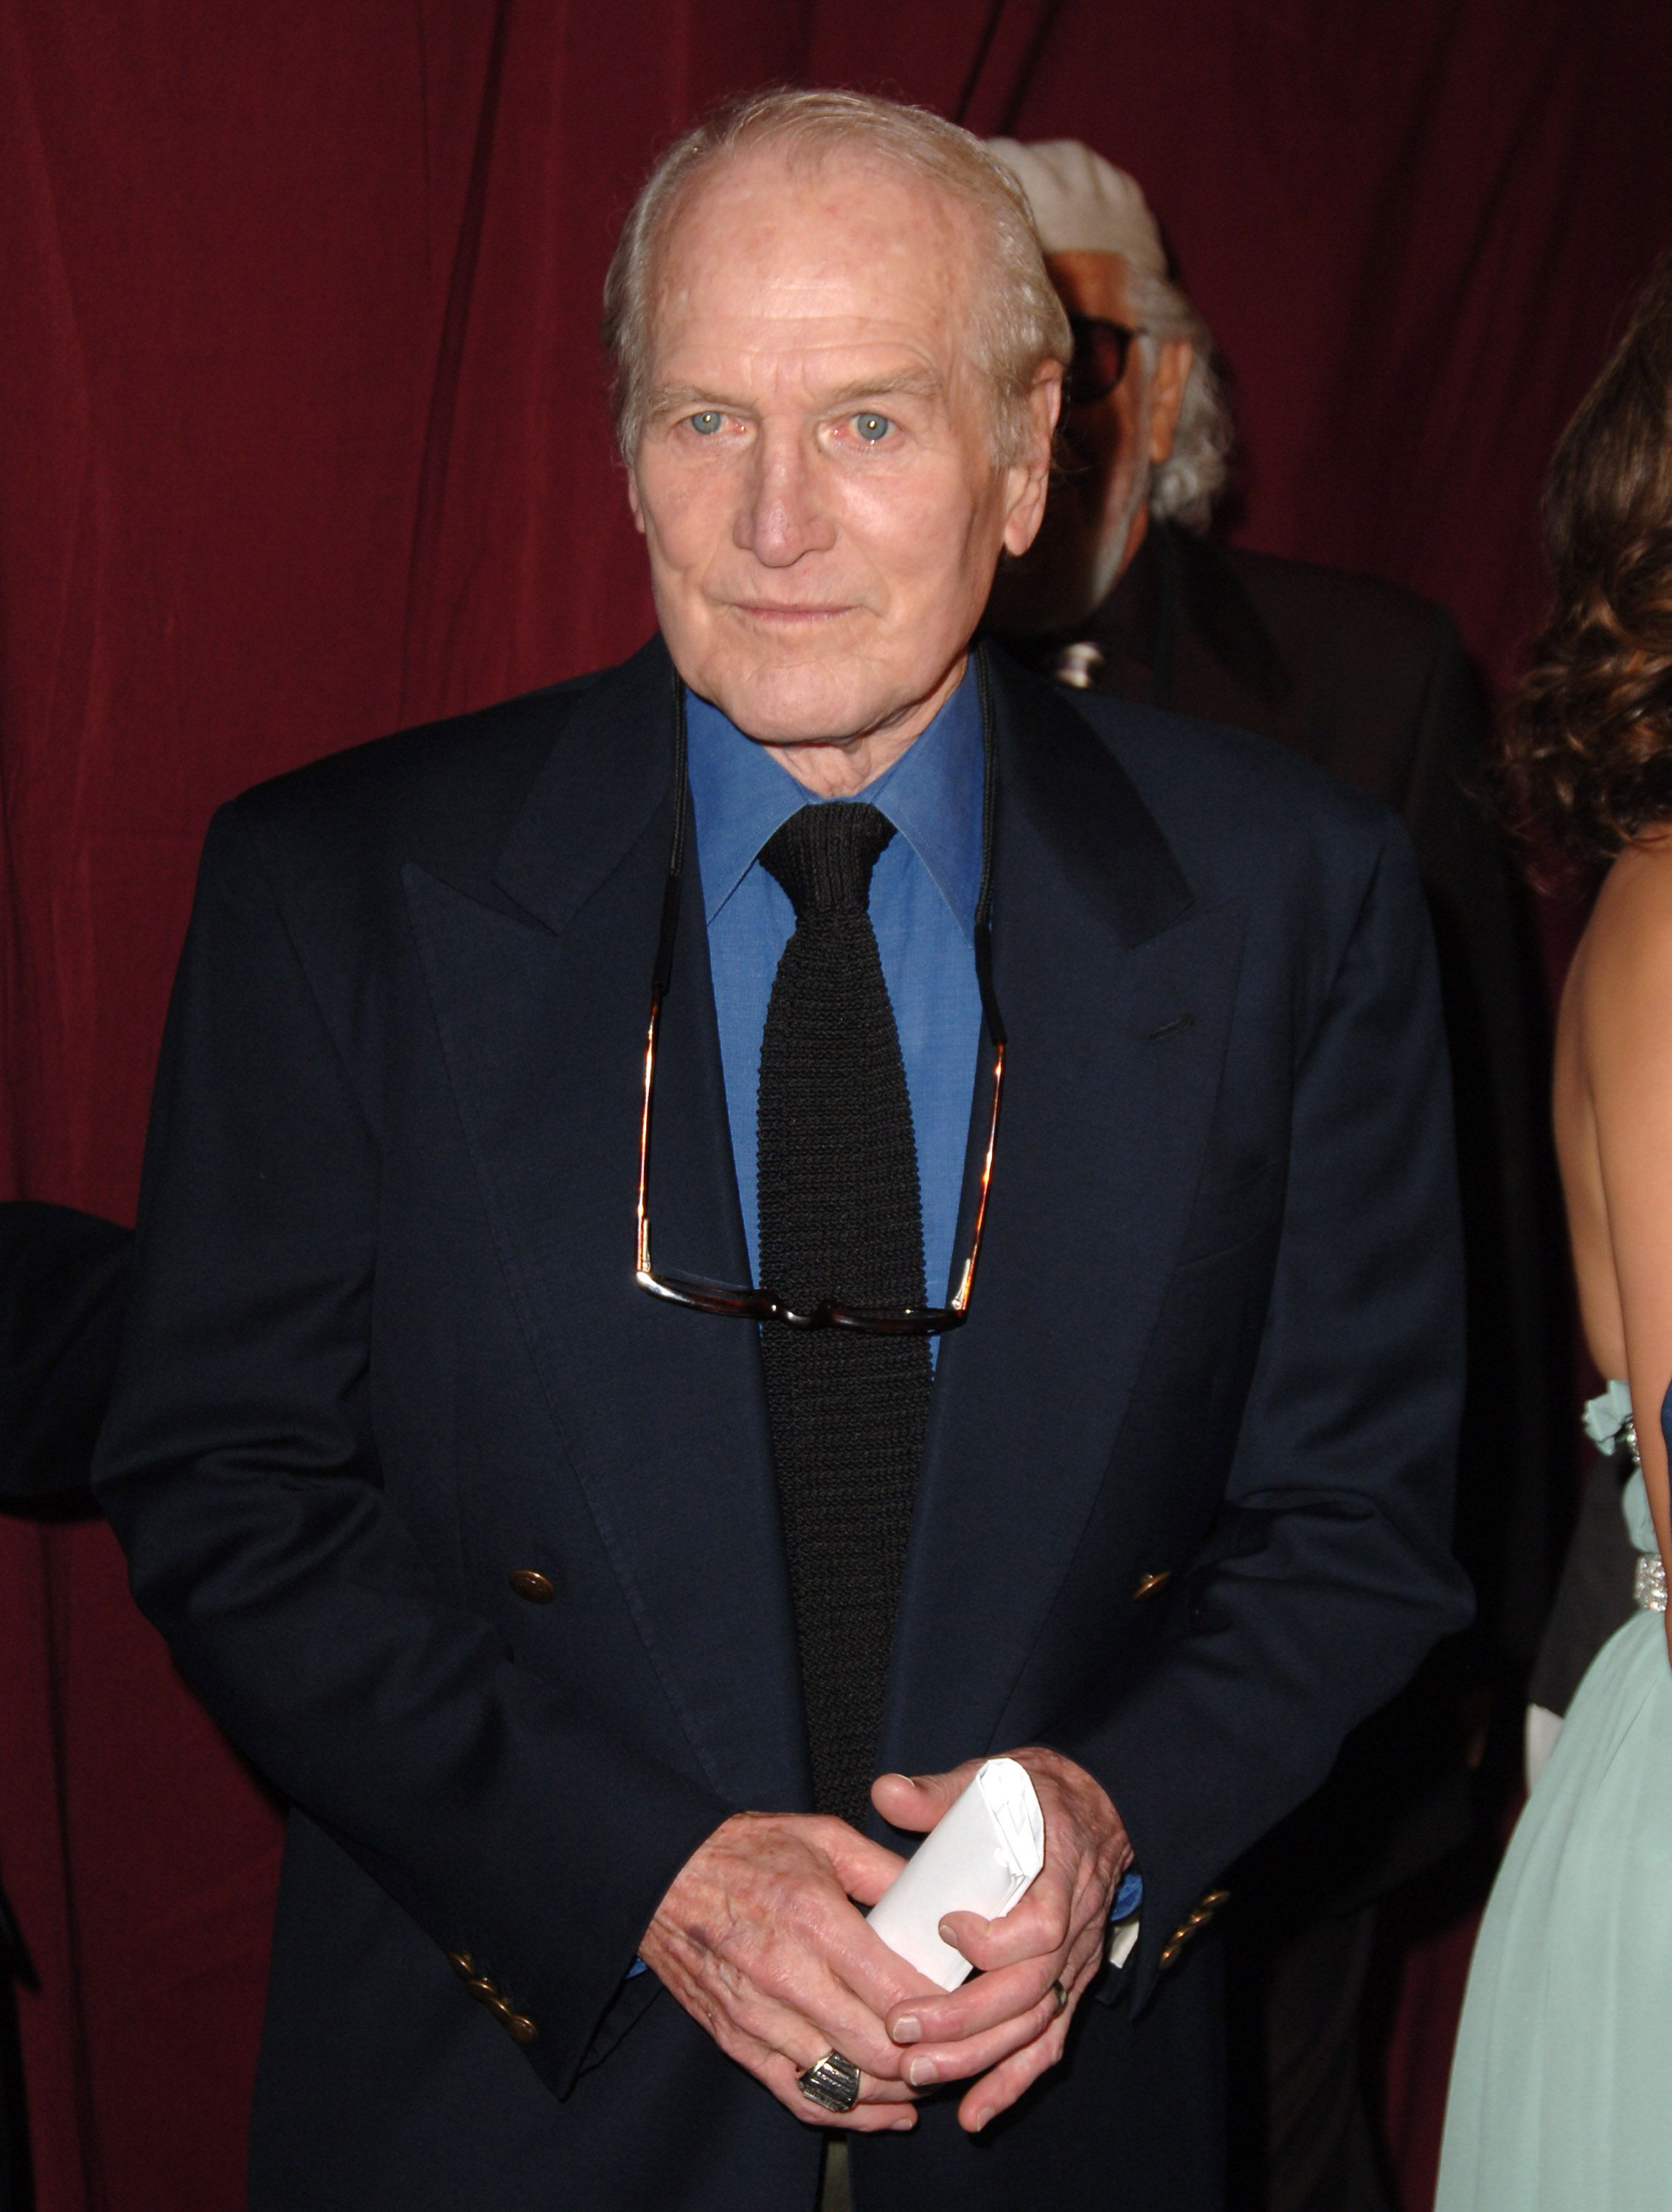 Paul Newman at the Kodak Theatre in Hollywood in 2006   Source: Getty Images